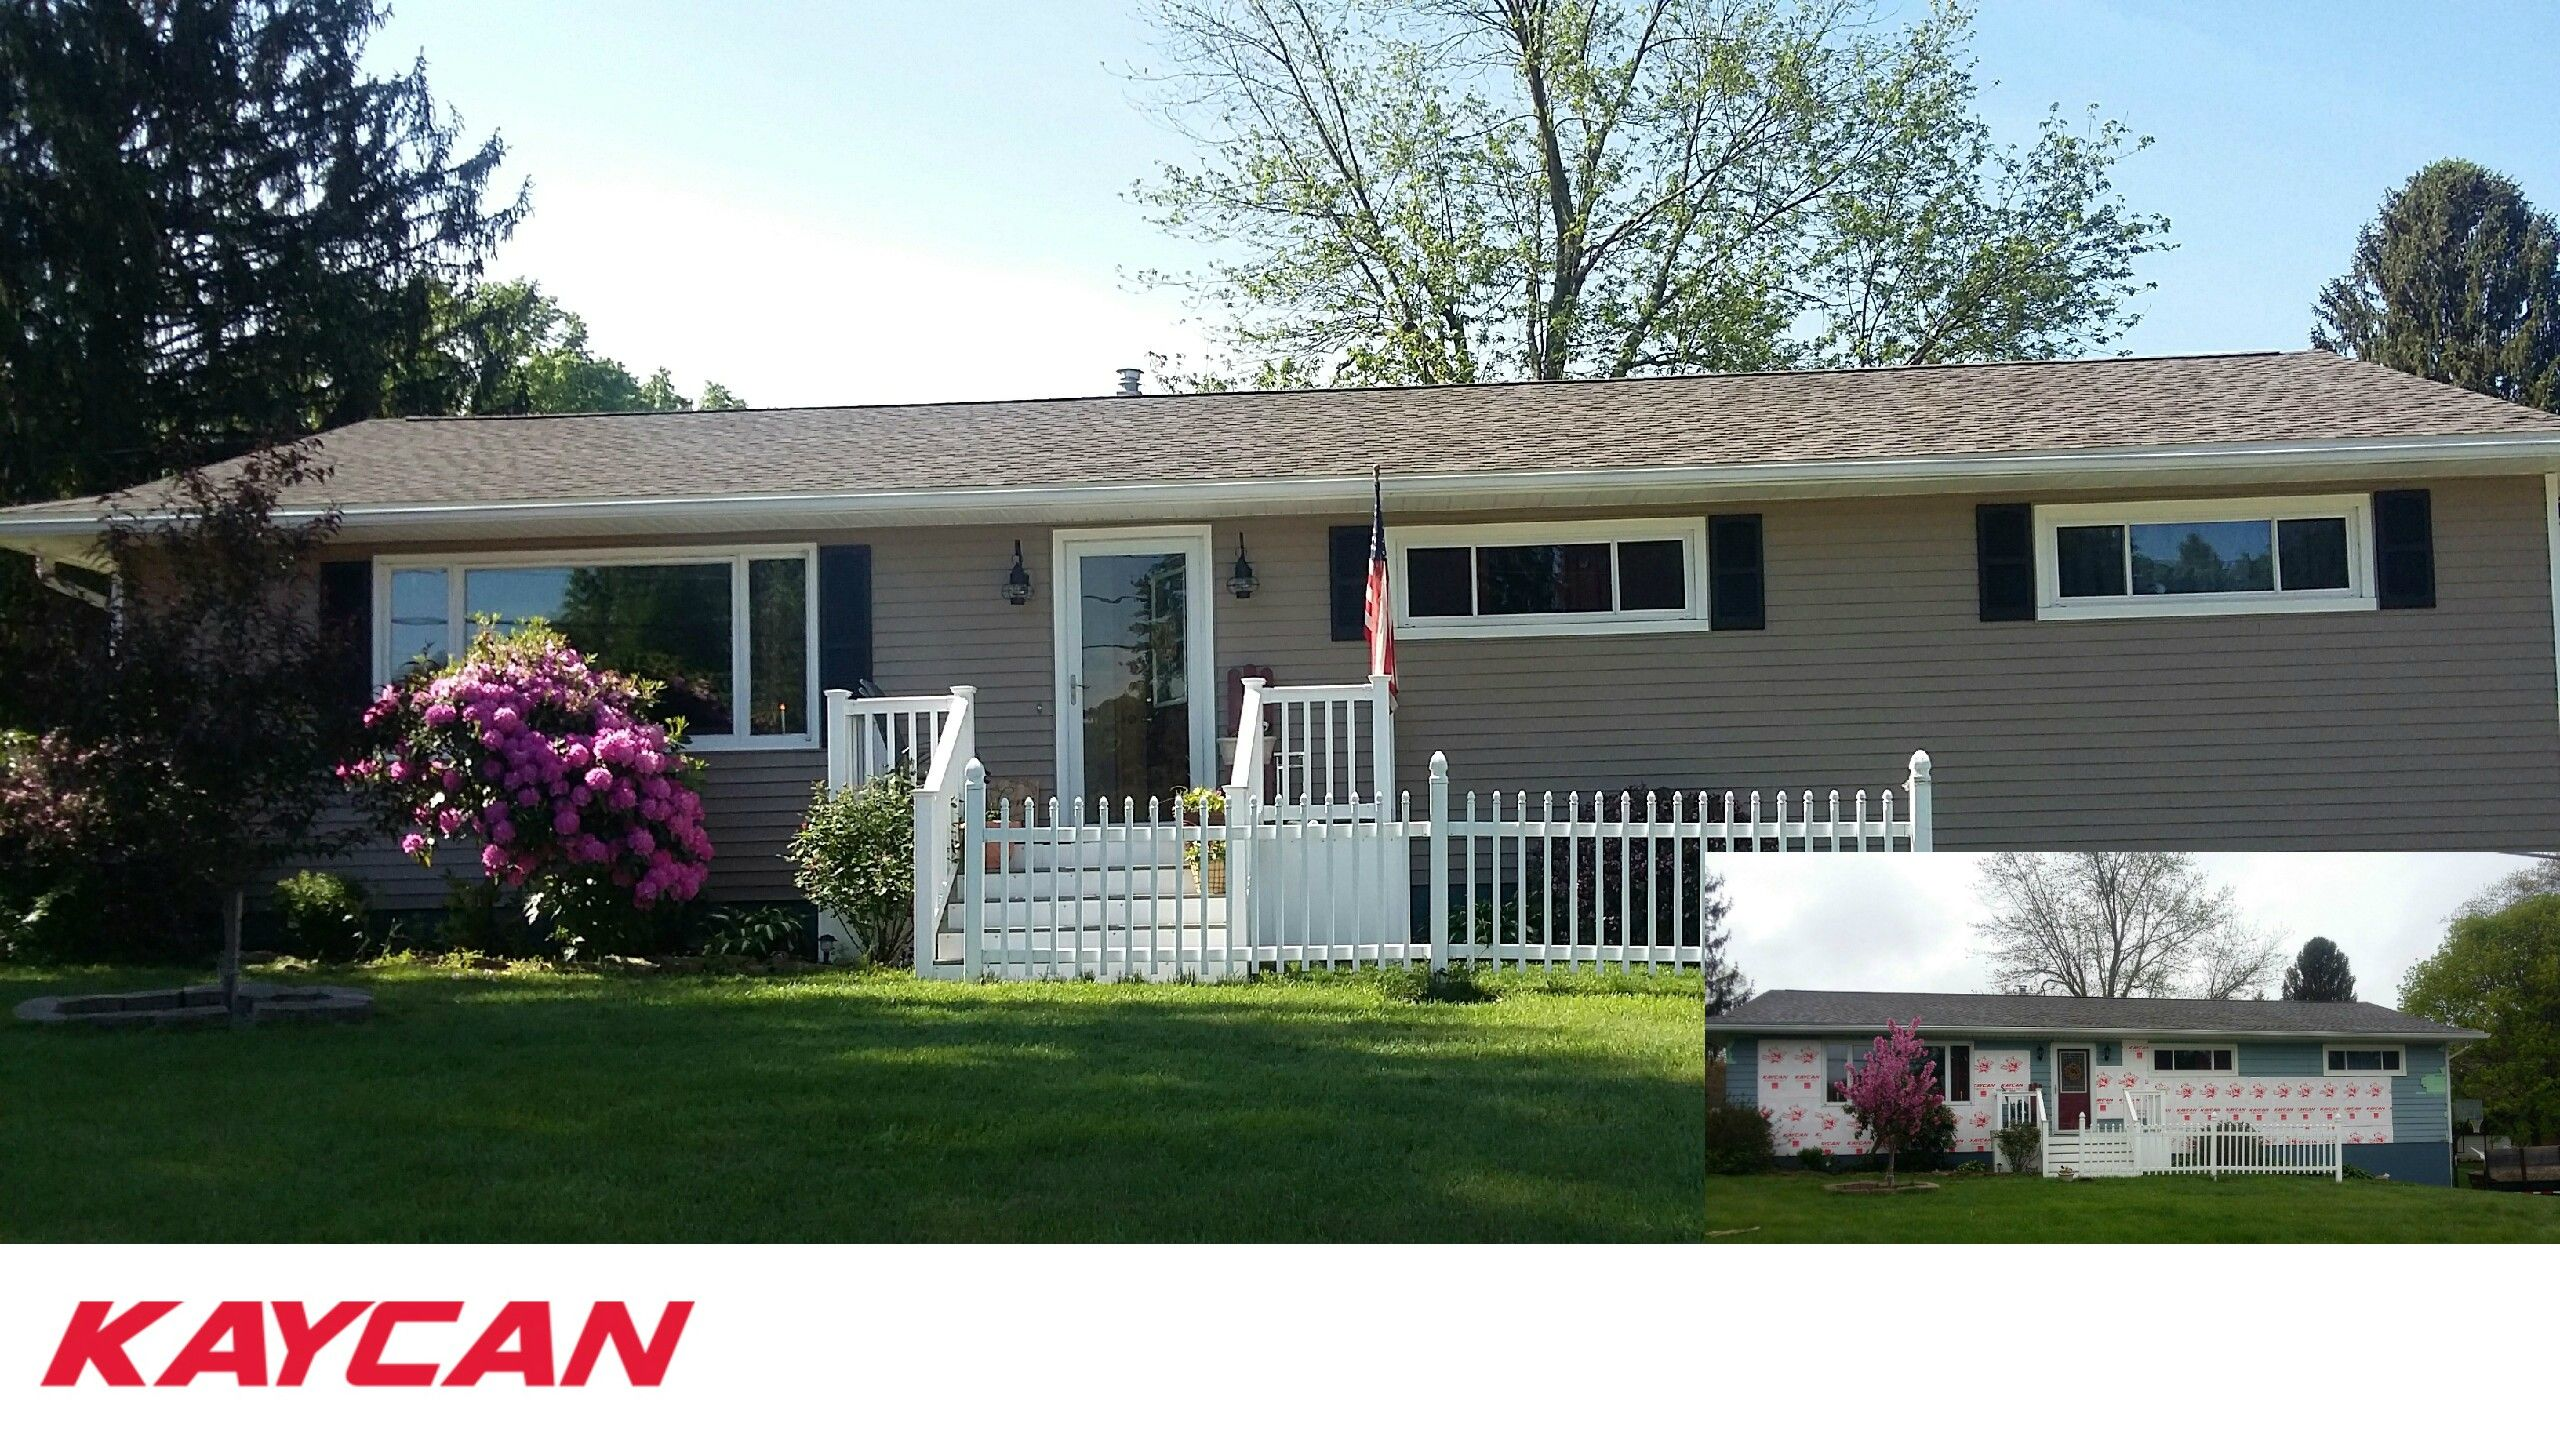 Ranch Style Home Before And After With Kaycan Vinyl